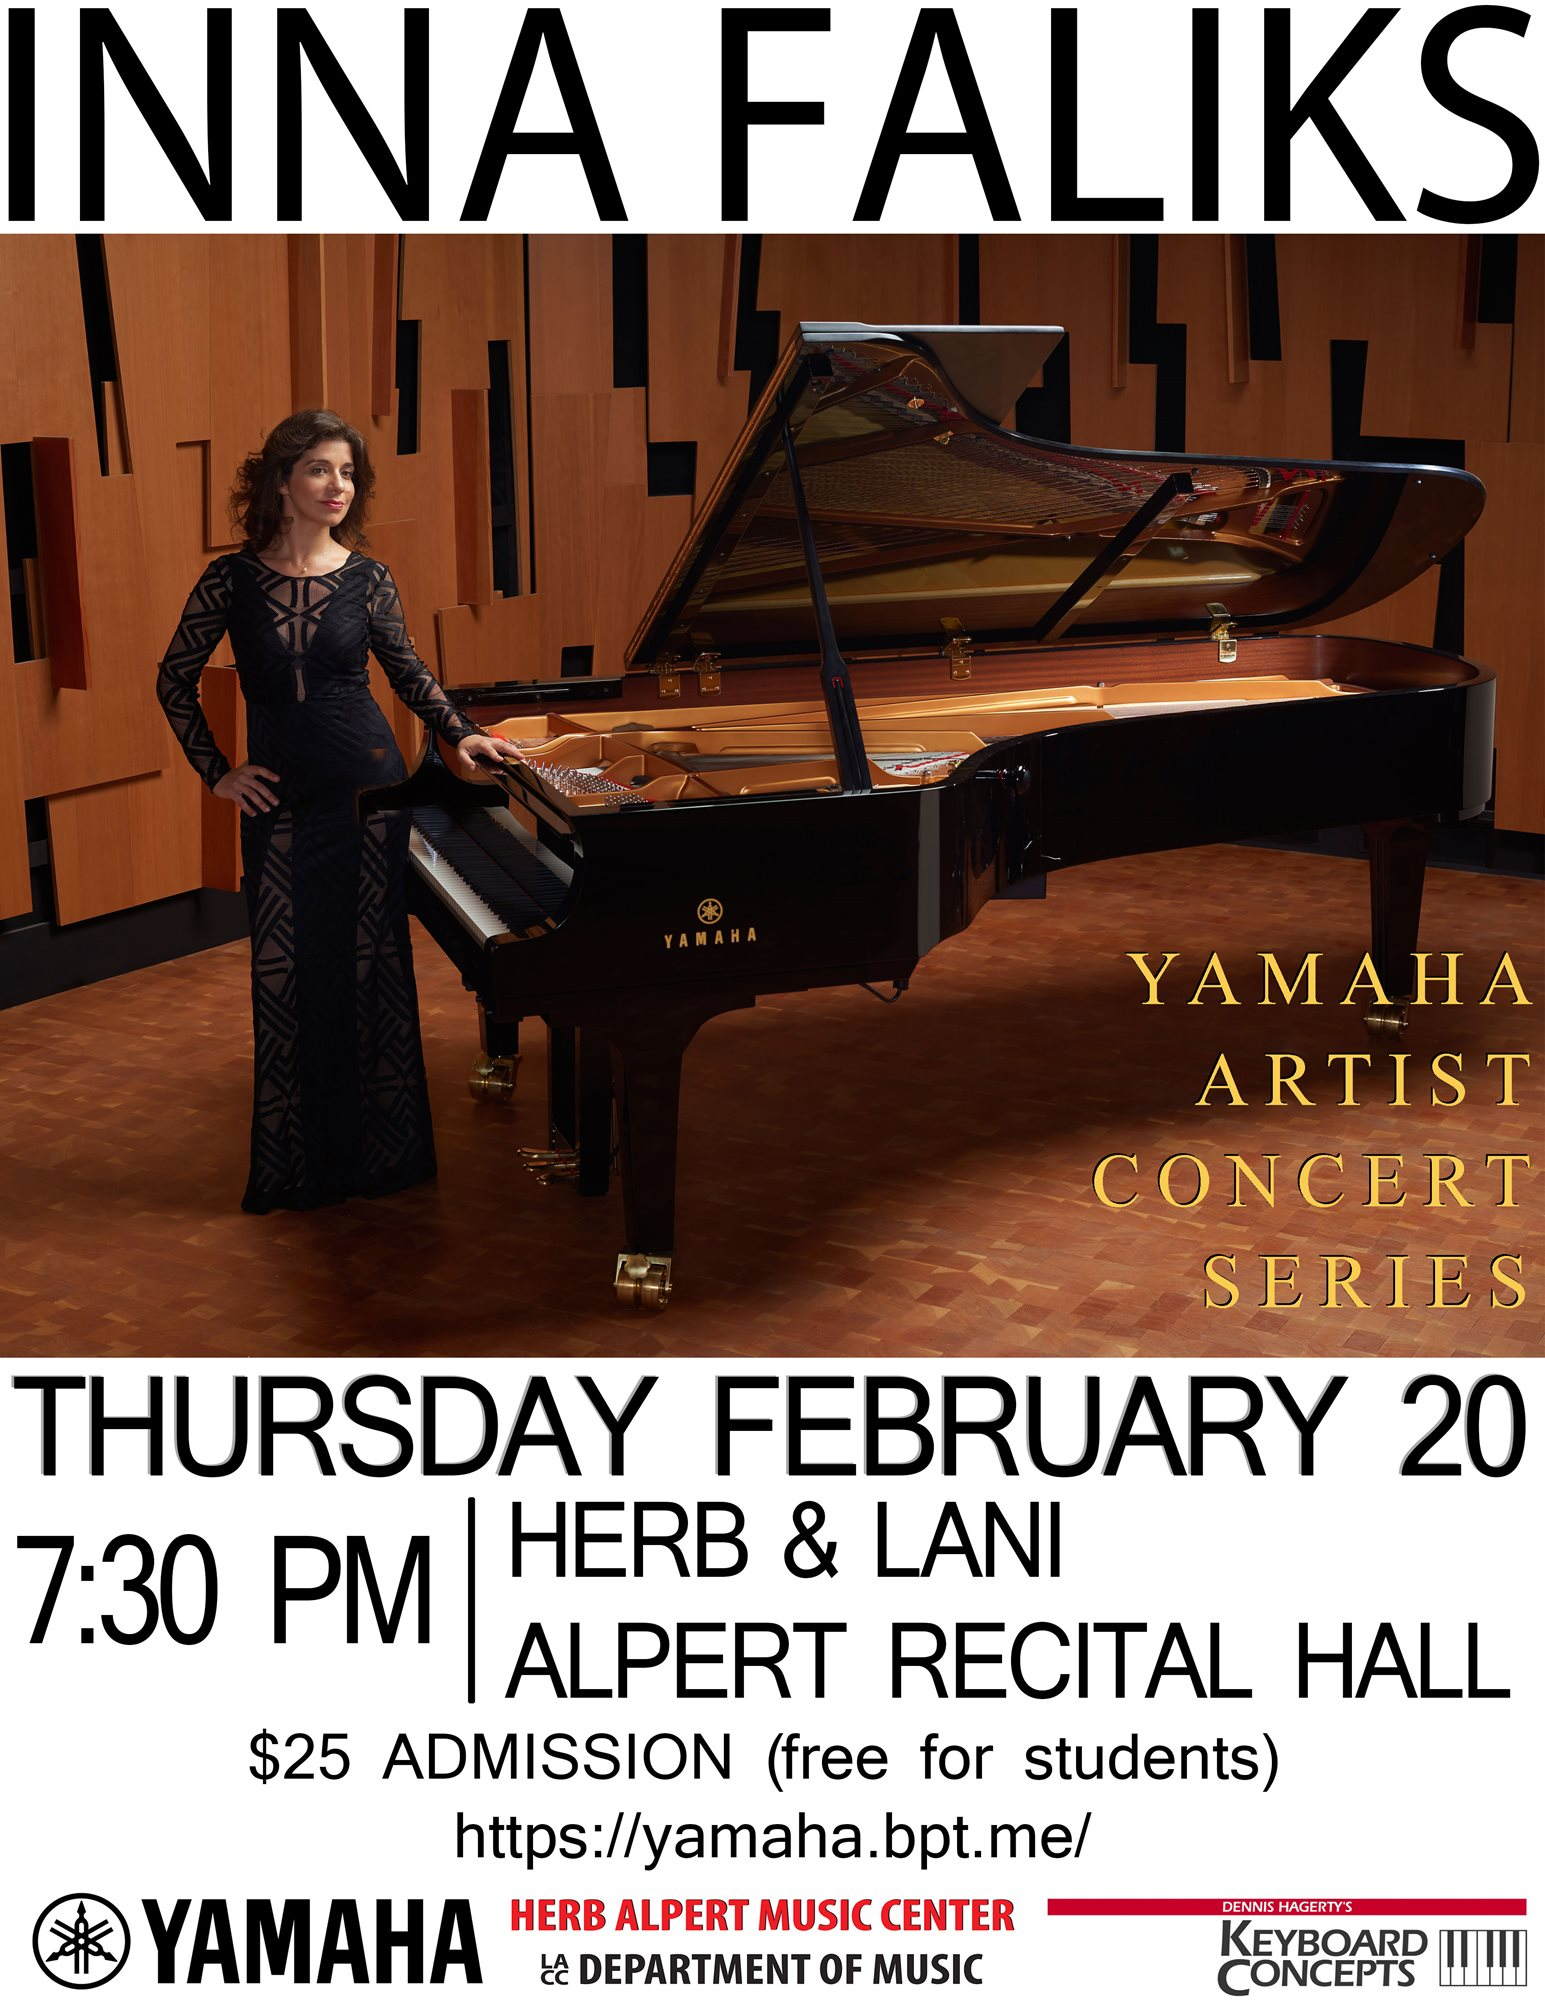 Concert Flyer: Yamaha Artist Concert Series, Inna Faliks, Thursday February 20th, 7:30pm, Herb & Lani Alpert Recital Hall